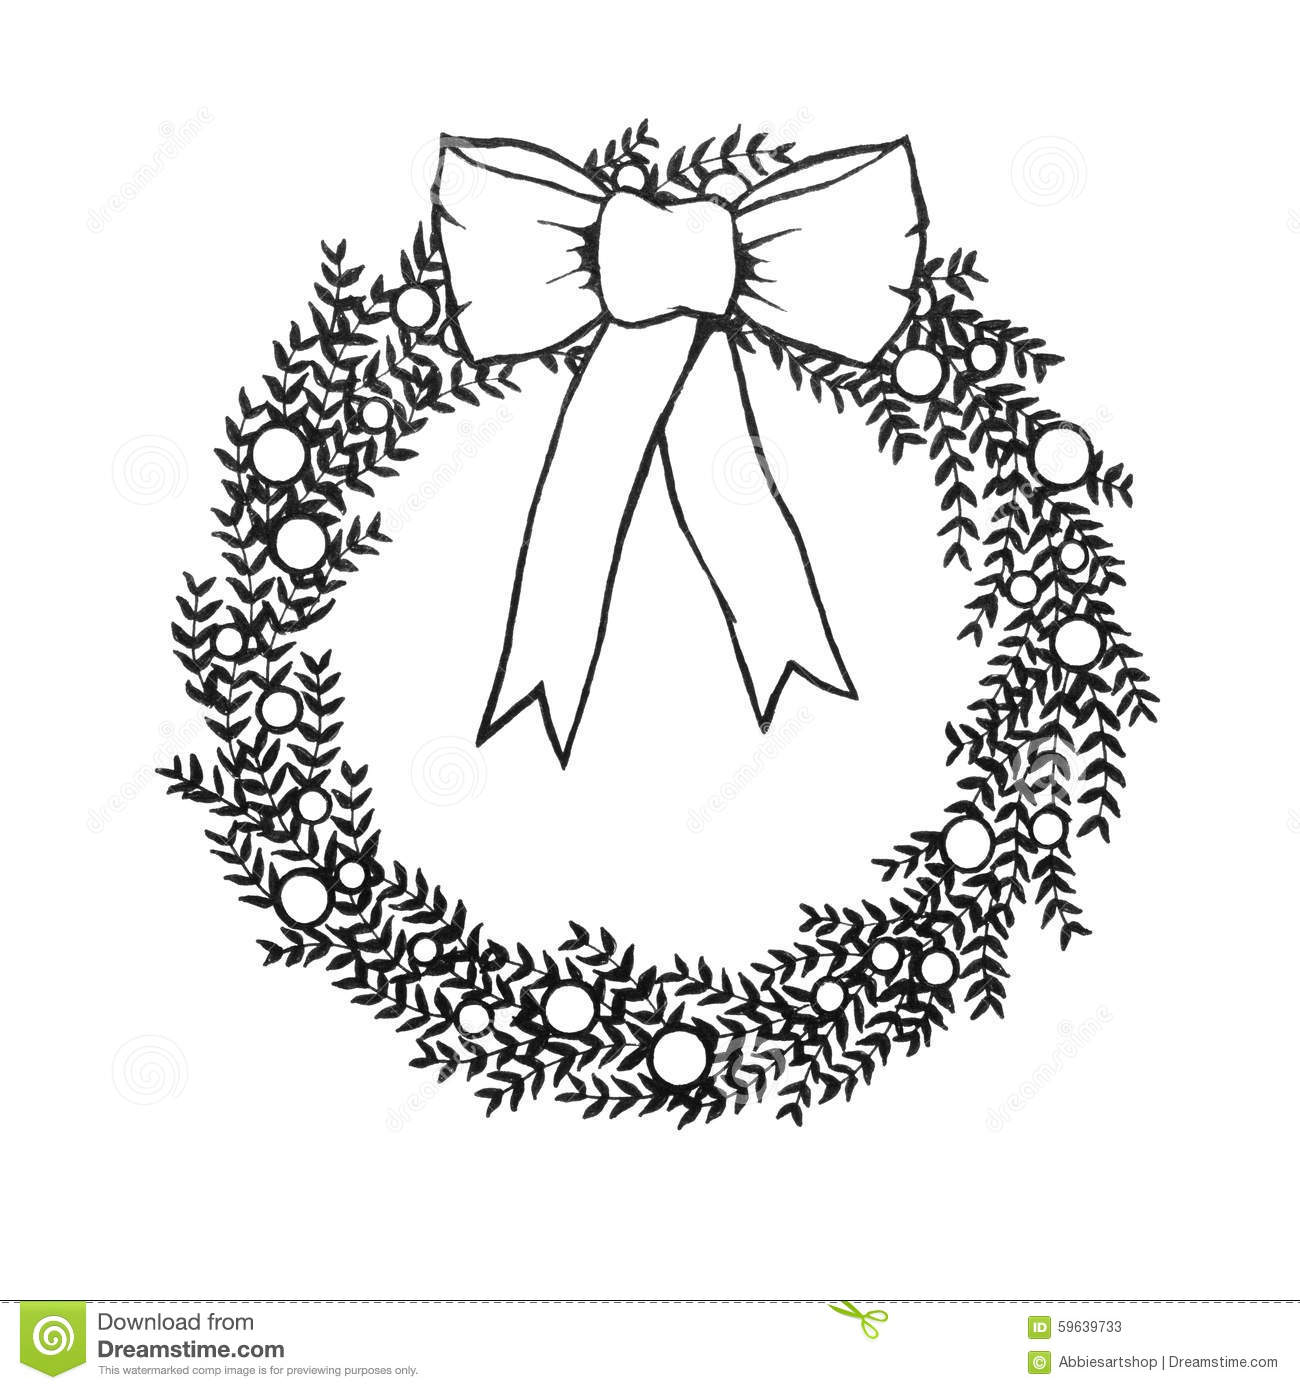 Download Black And White Christmas Wreath With Bow Hand Drawn Illustraiton Stock Illustration